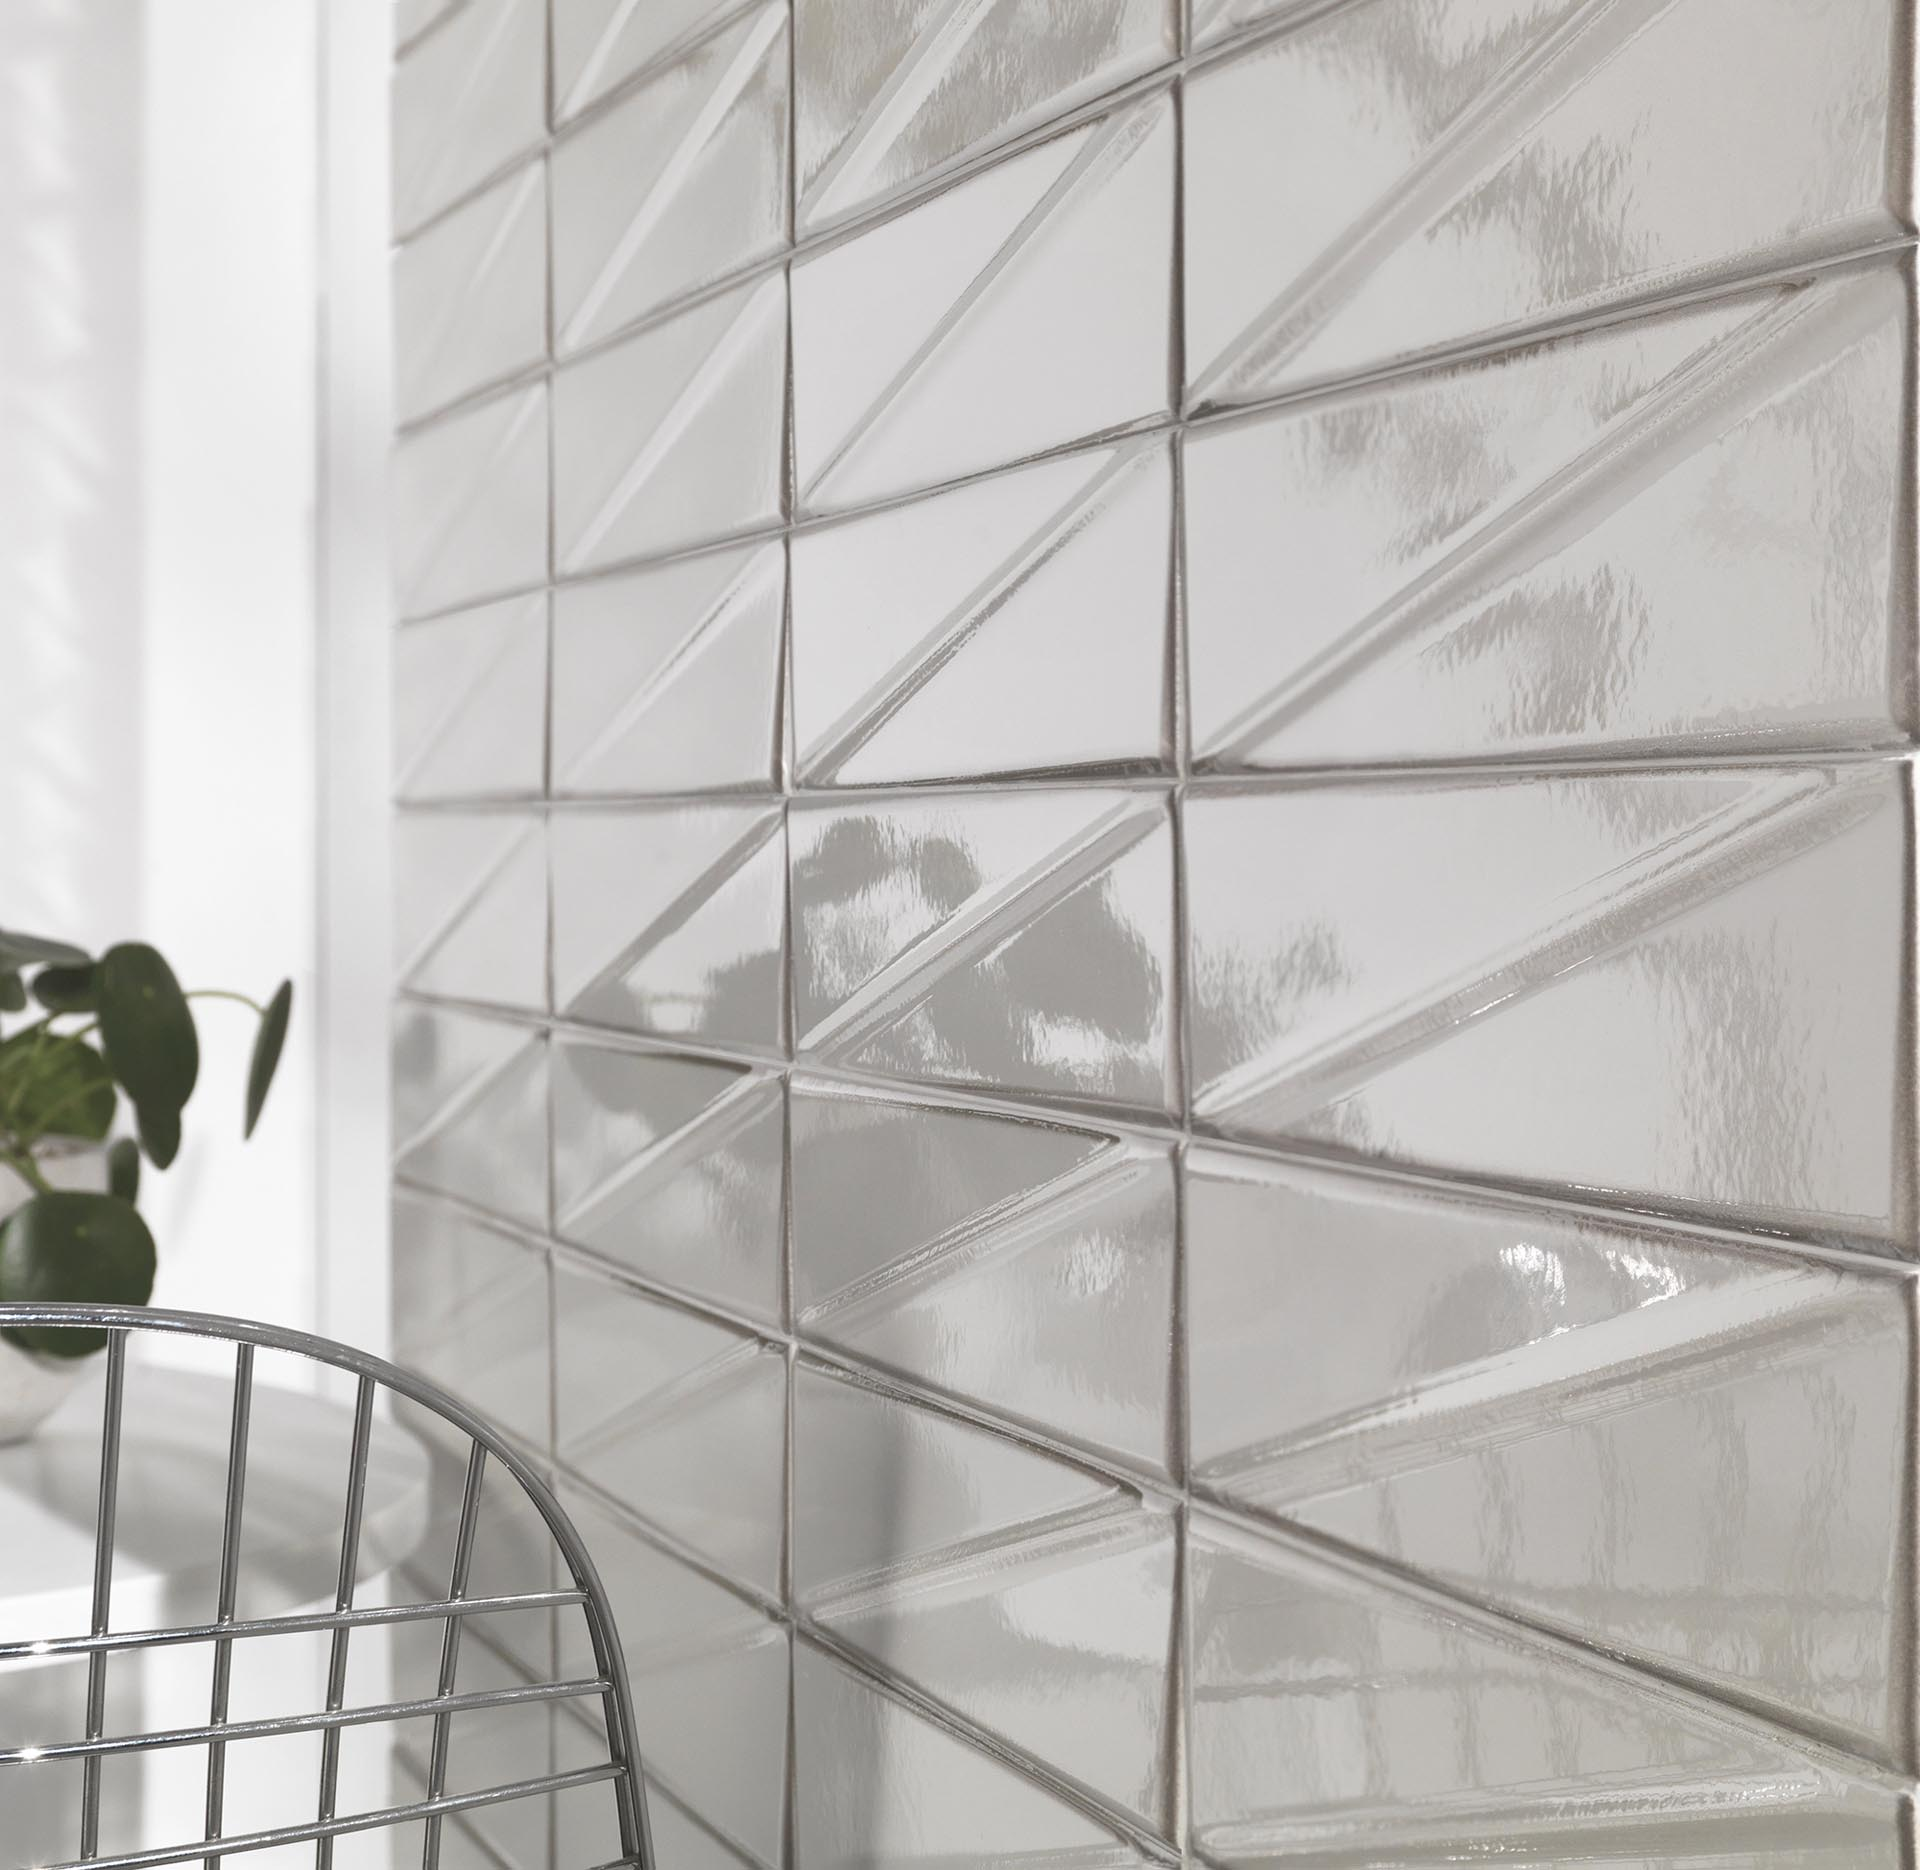 Glossy tiles are making a comeback, allowing floors and walls to pop with perfectly smooth surfaces and beautiful shine.